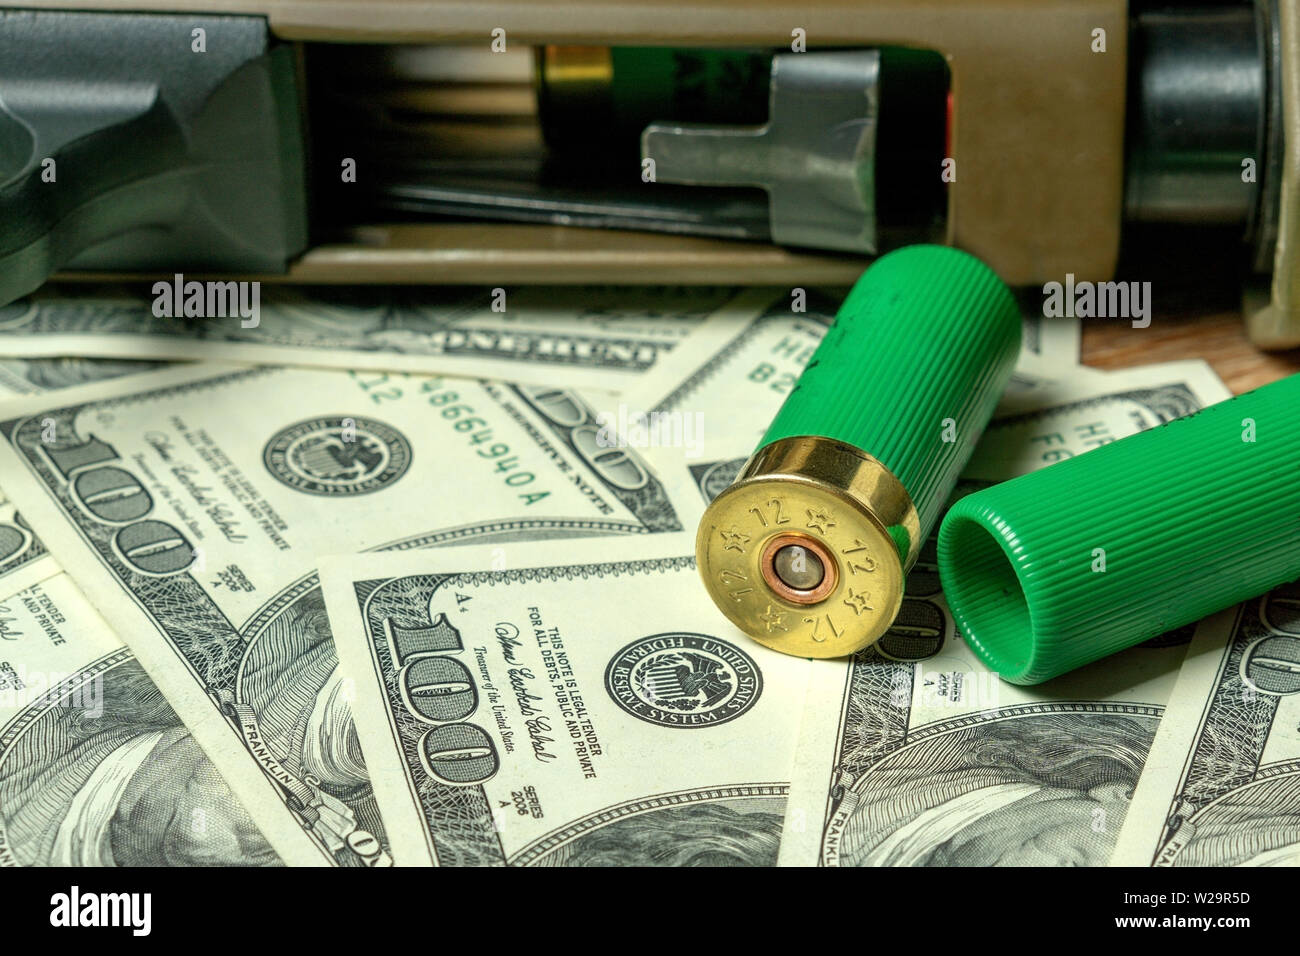 Shotgun and cartridges on dollars. Concept for crime, global arms trade, weapons sale. Illegal hunting, poaching - Stock Image